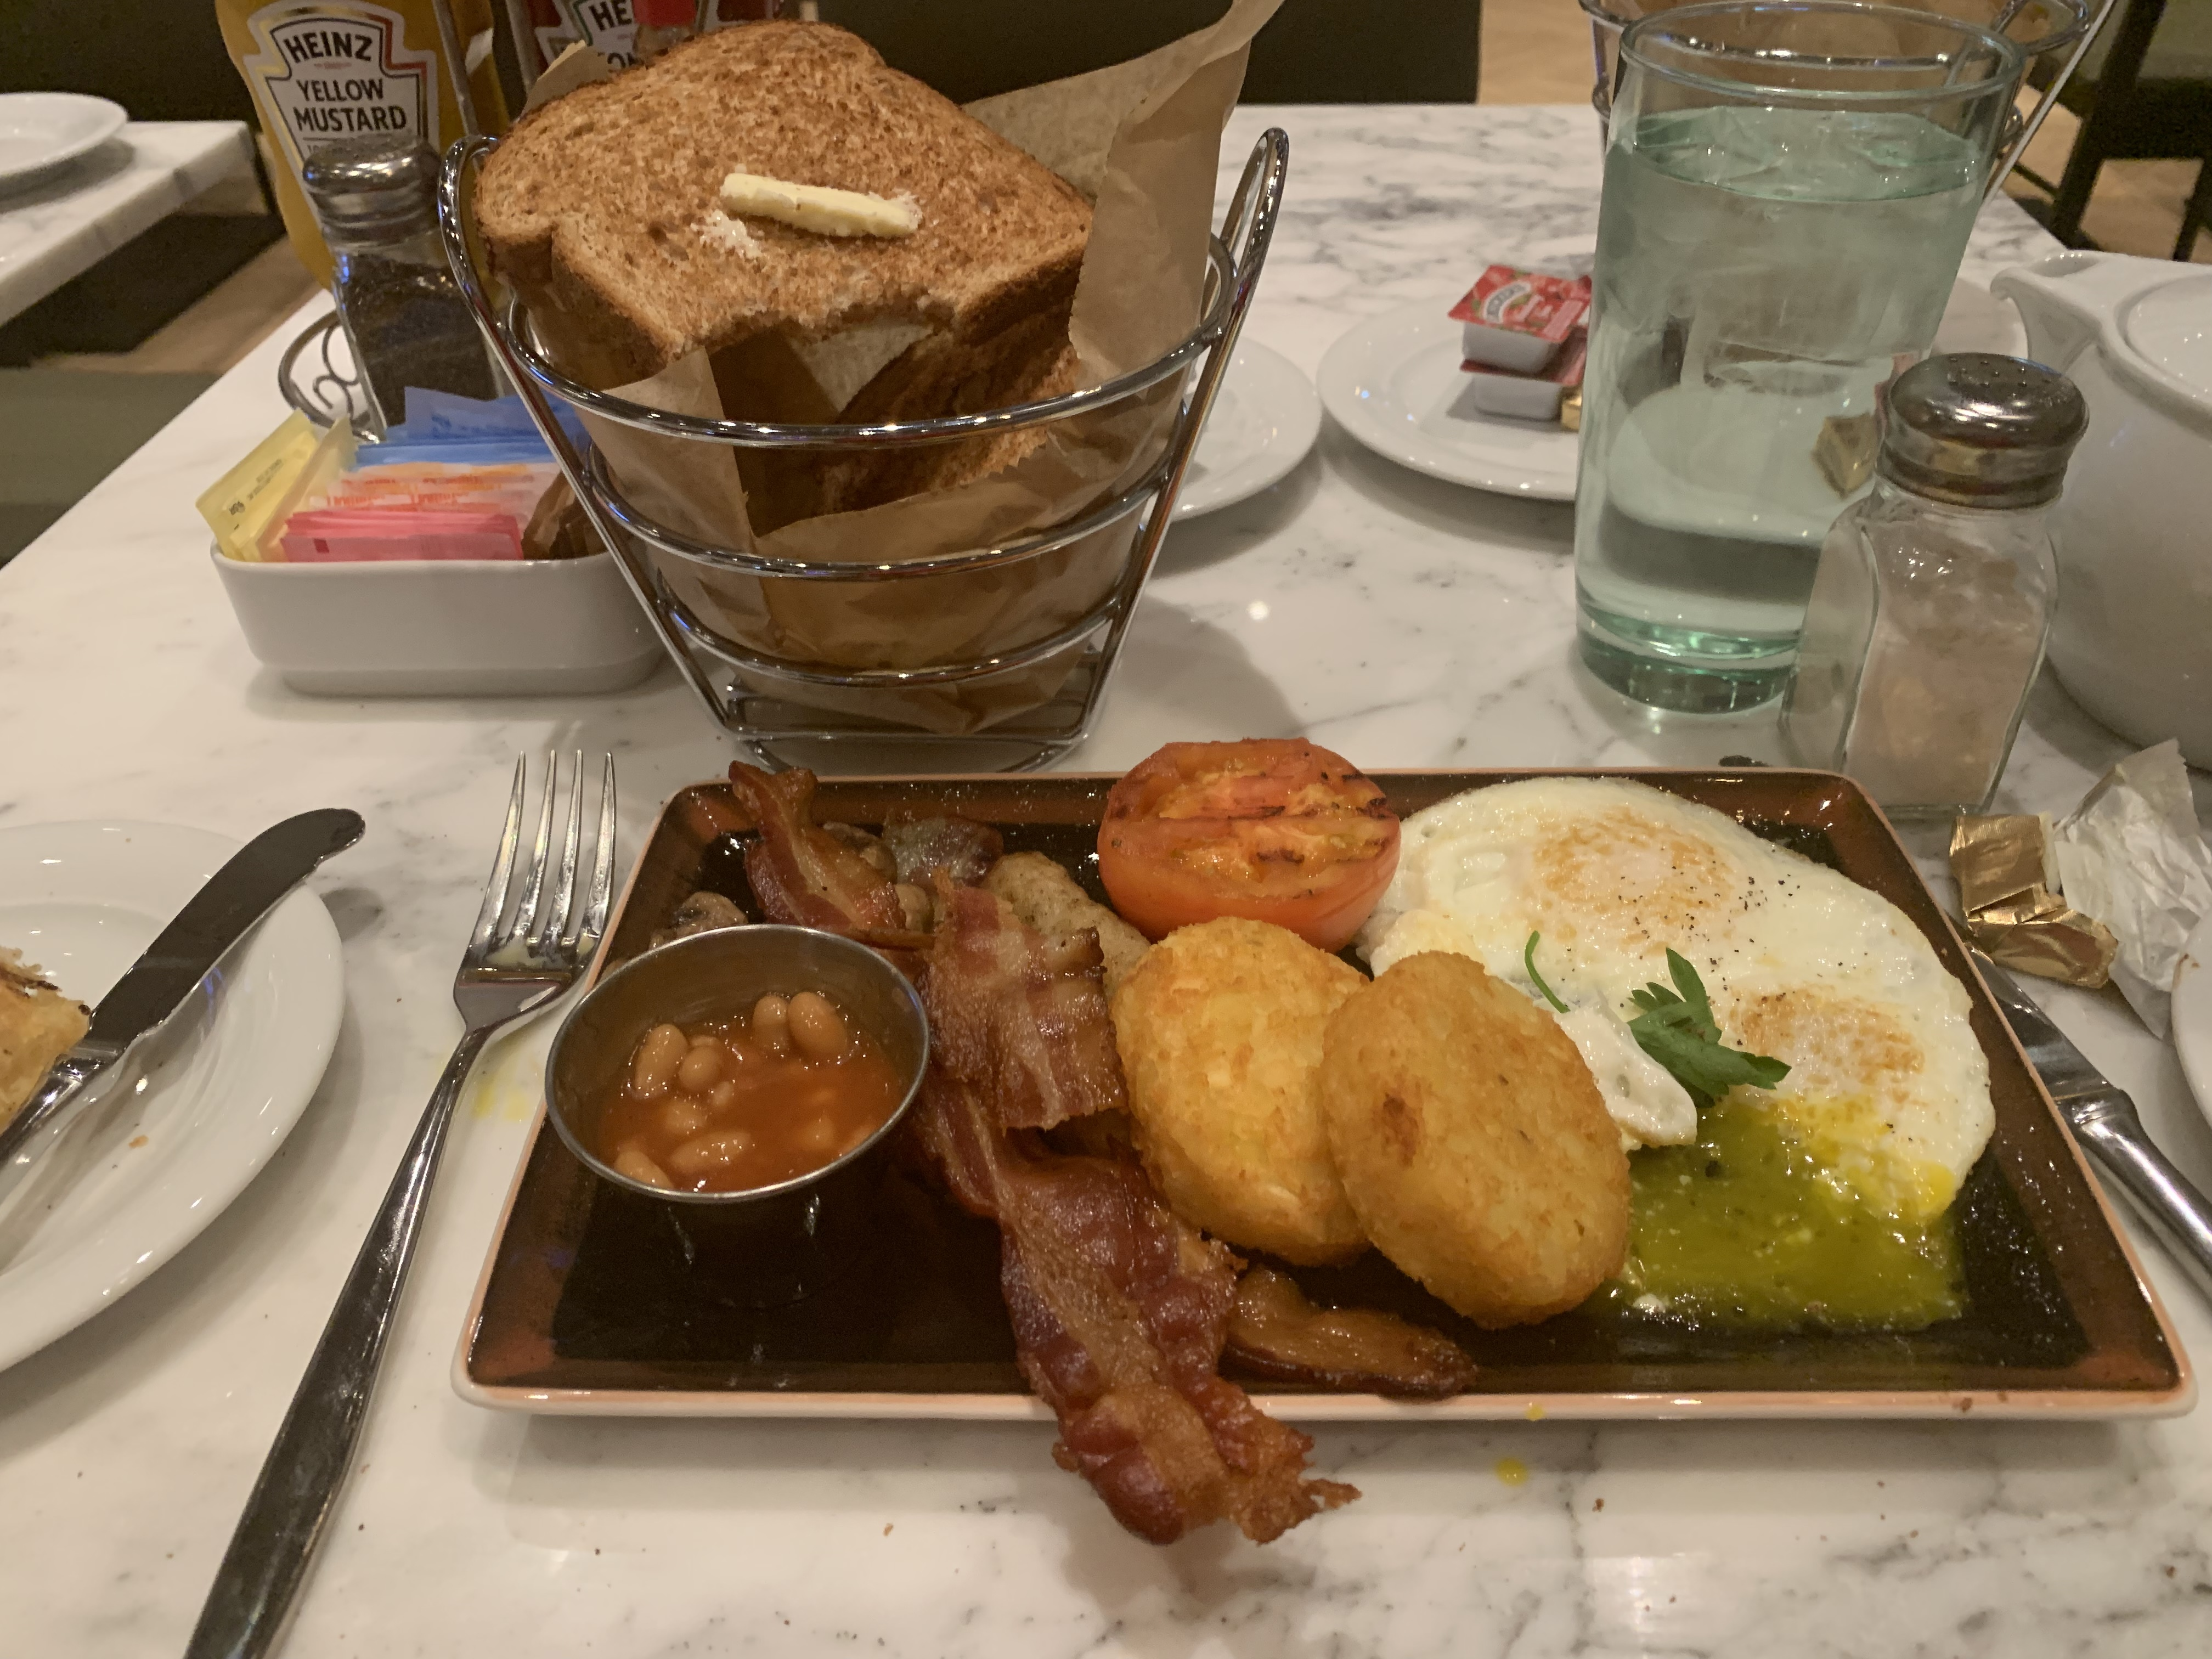 Big breakfast the local is open 24 hrs!